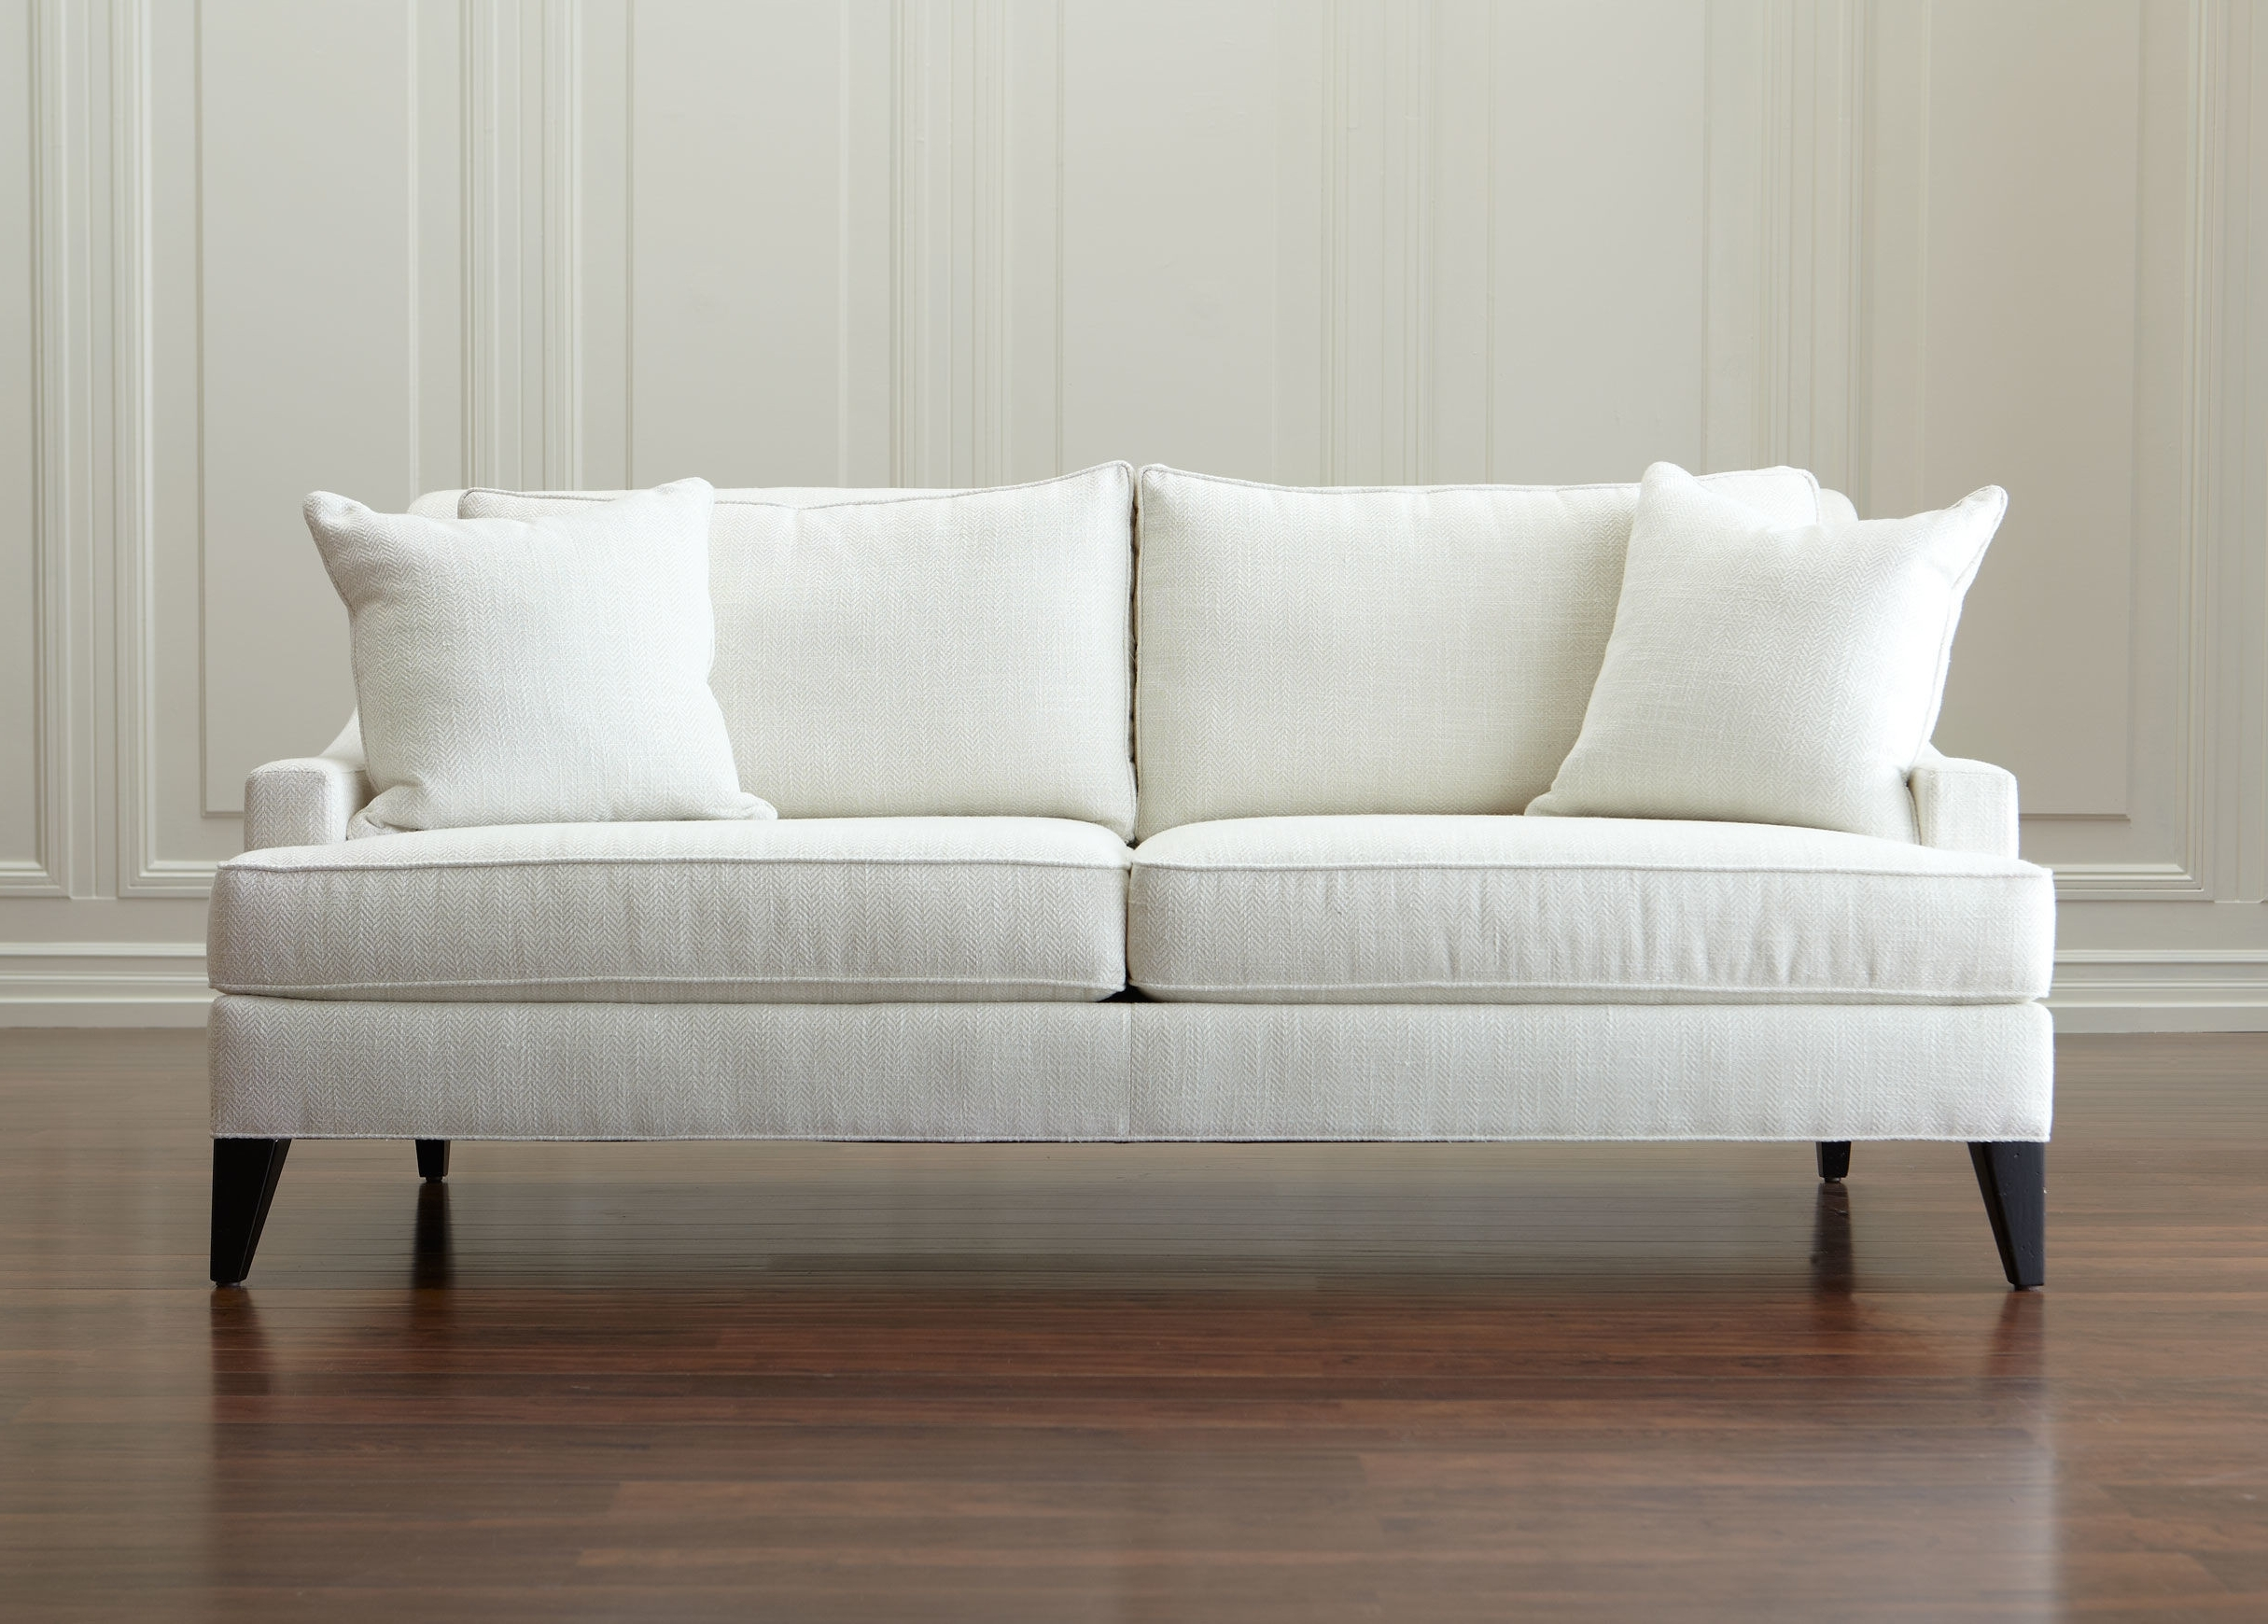 Well Known Down Filled Sofas Throughout Furniture : Ethan Allen Down Filled Sofa Luxury Best Ethan Allen (View 12 of 20)